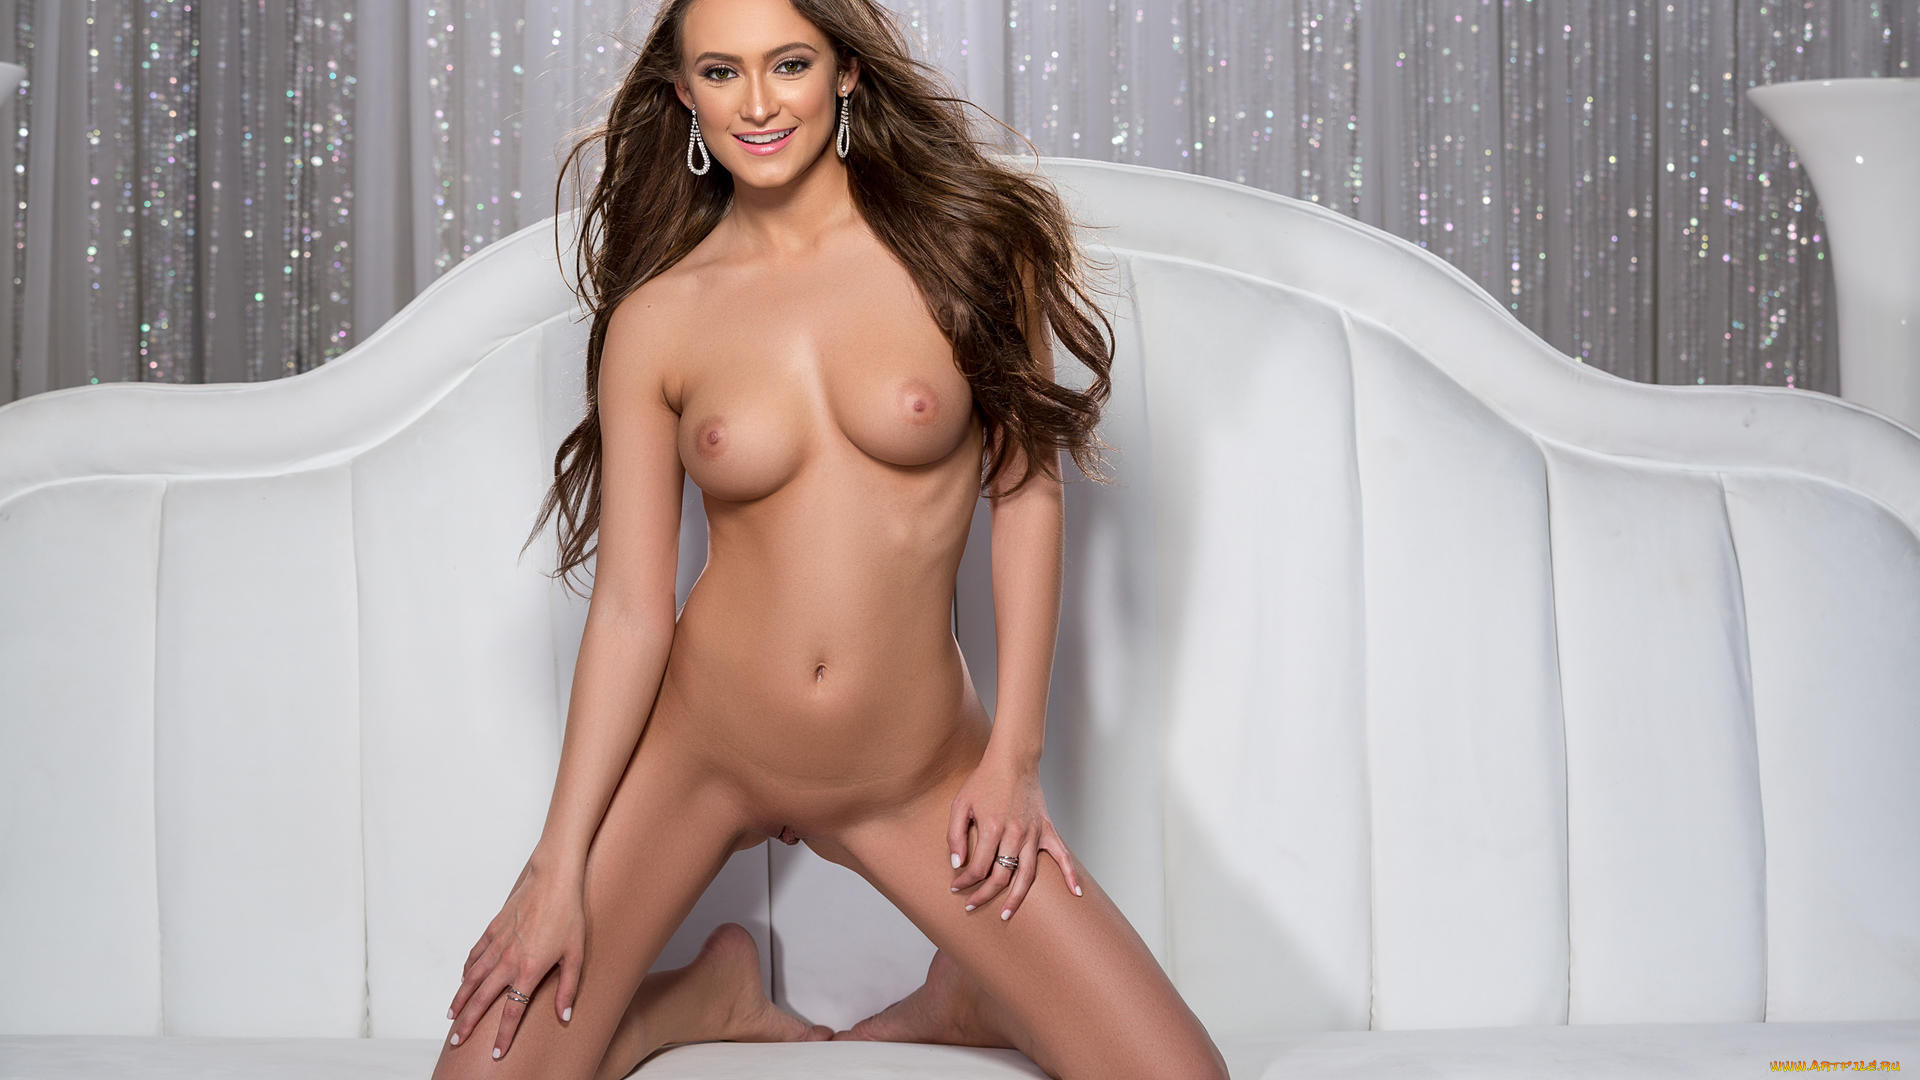 Deanna russo playboy naked